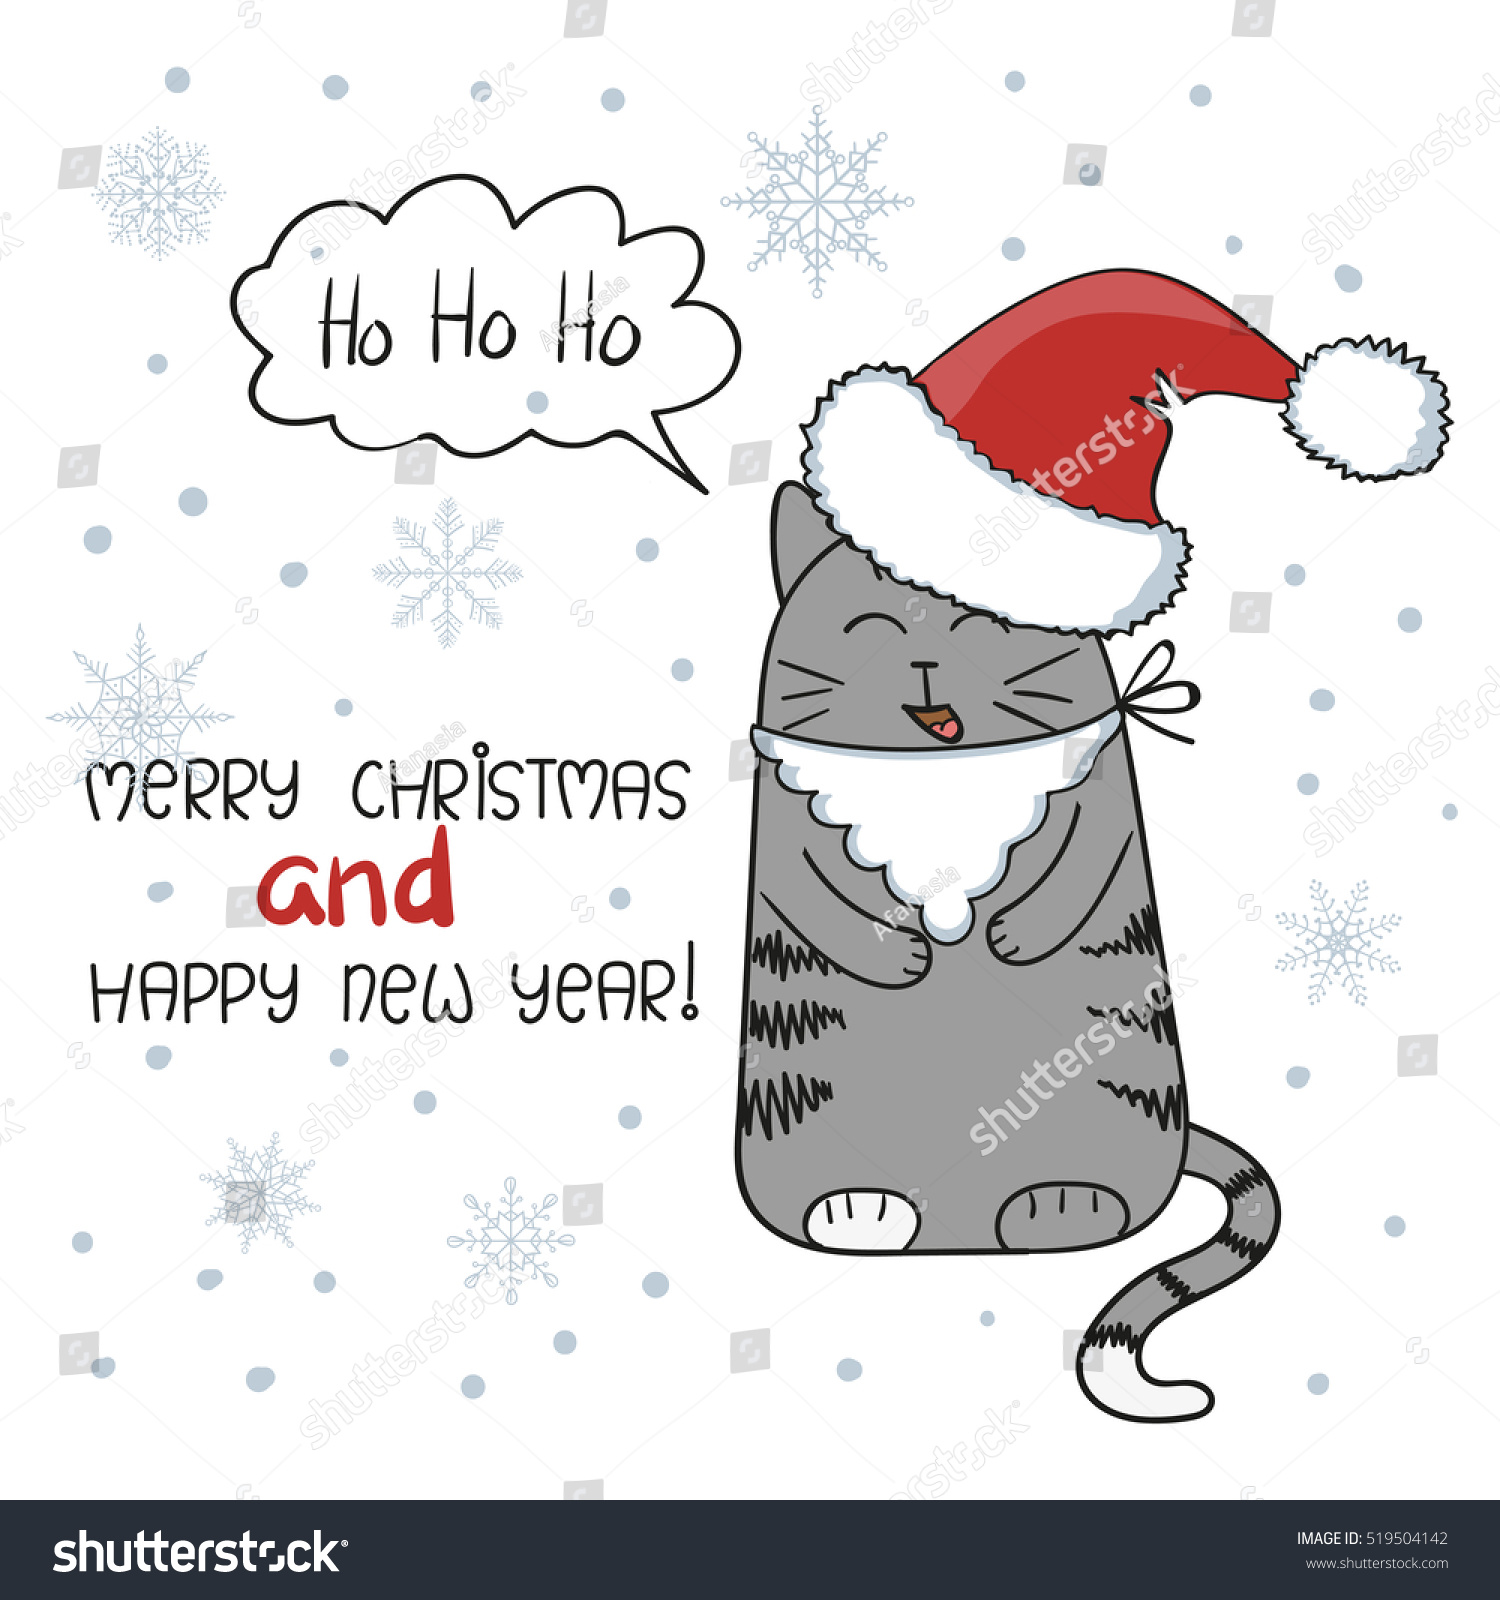 merry christmas and happy new year greeting card design cute cat with beard and santa